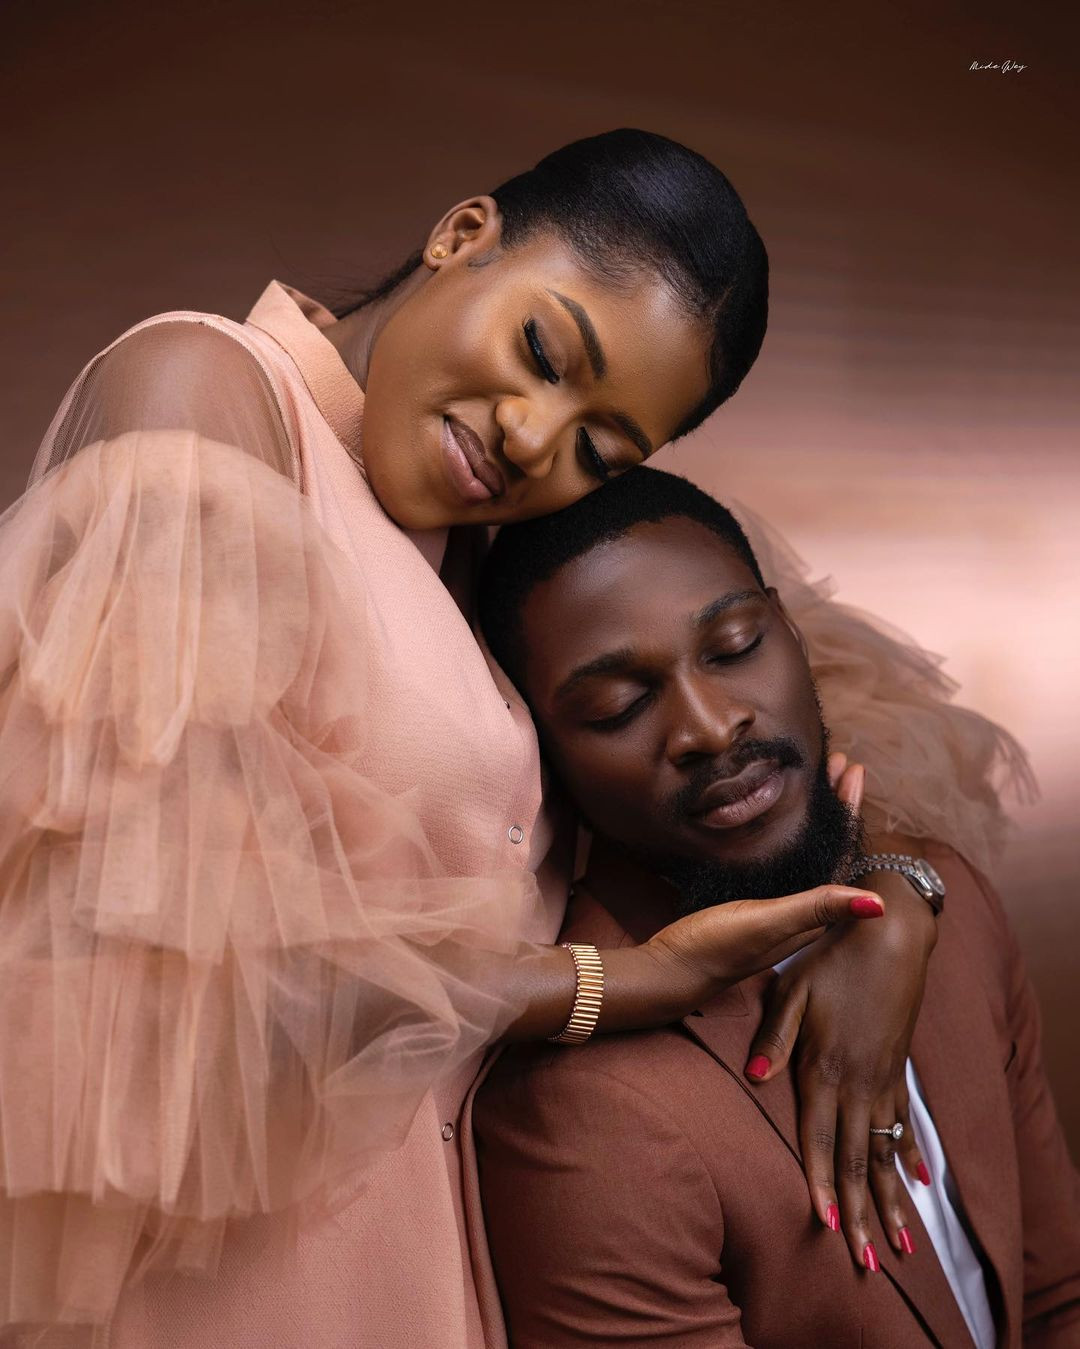 61209c4dba183 - ''I prayed and you came'' Tobi Bakare, gushes over his bride-to-be as he shares more pre-wedding photos